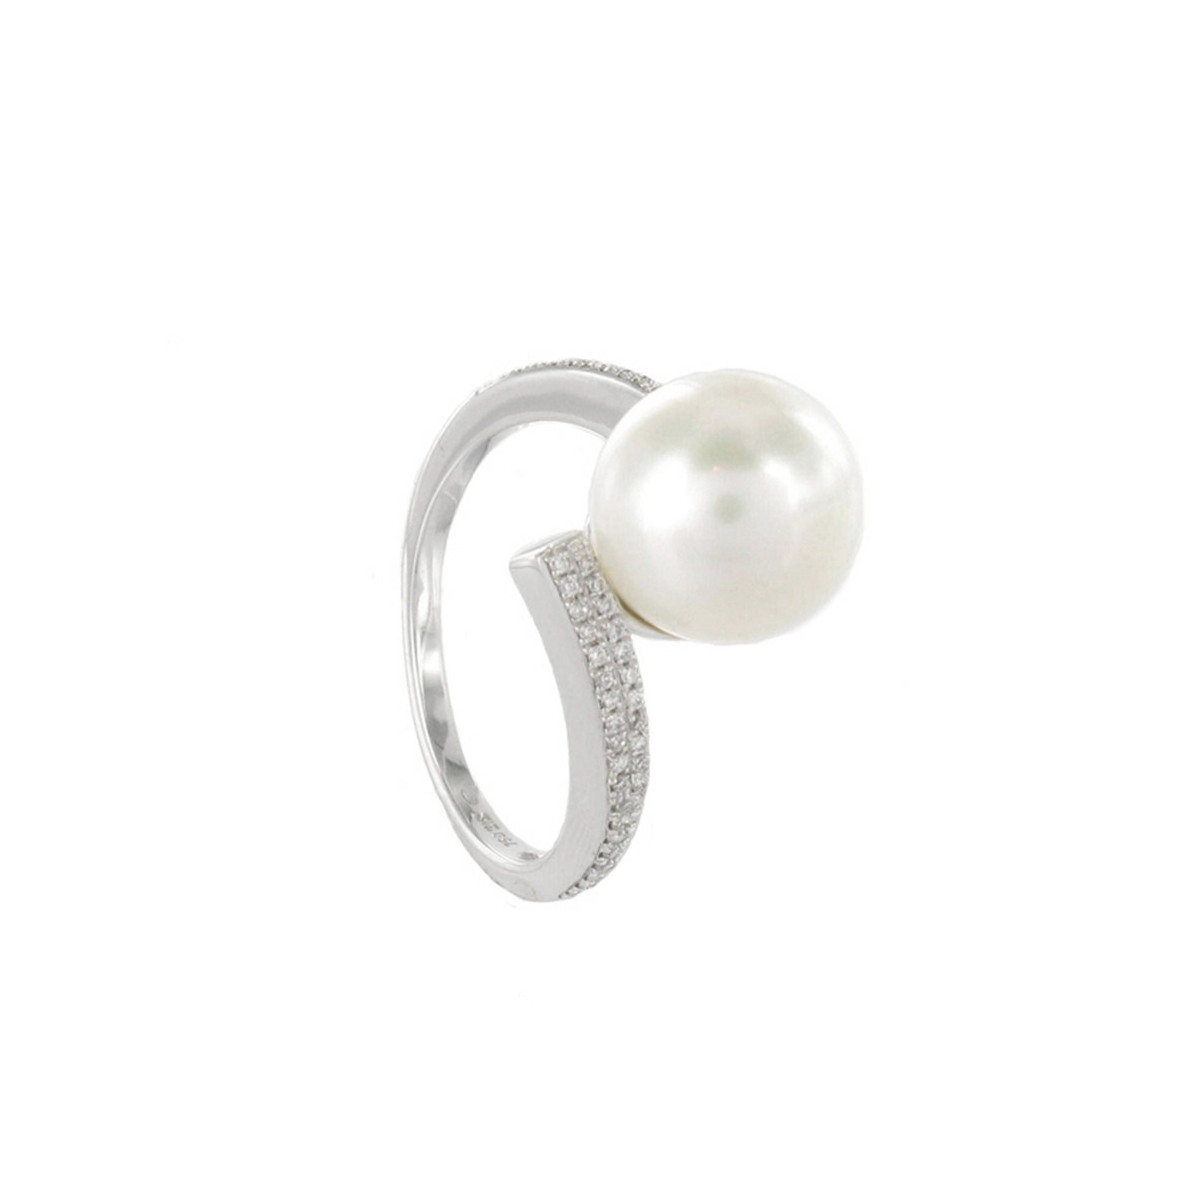 RING WITH 10 MM CULTIVATED PEARL AND DIAMONDS